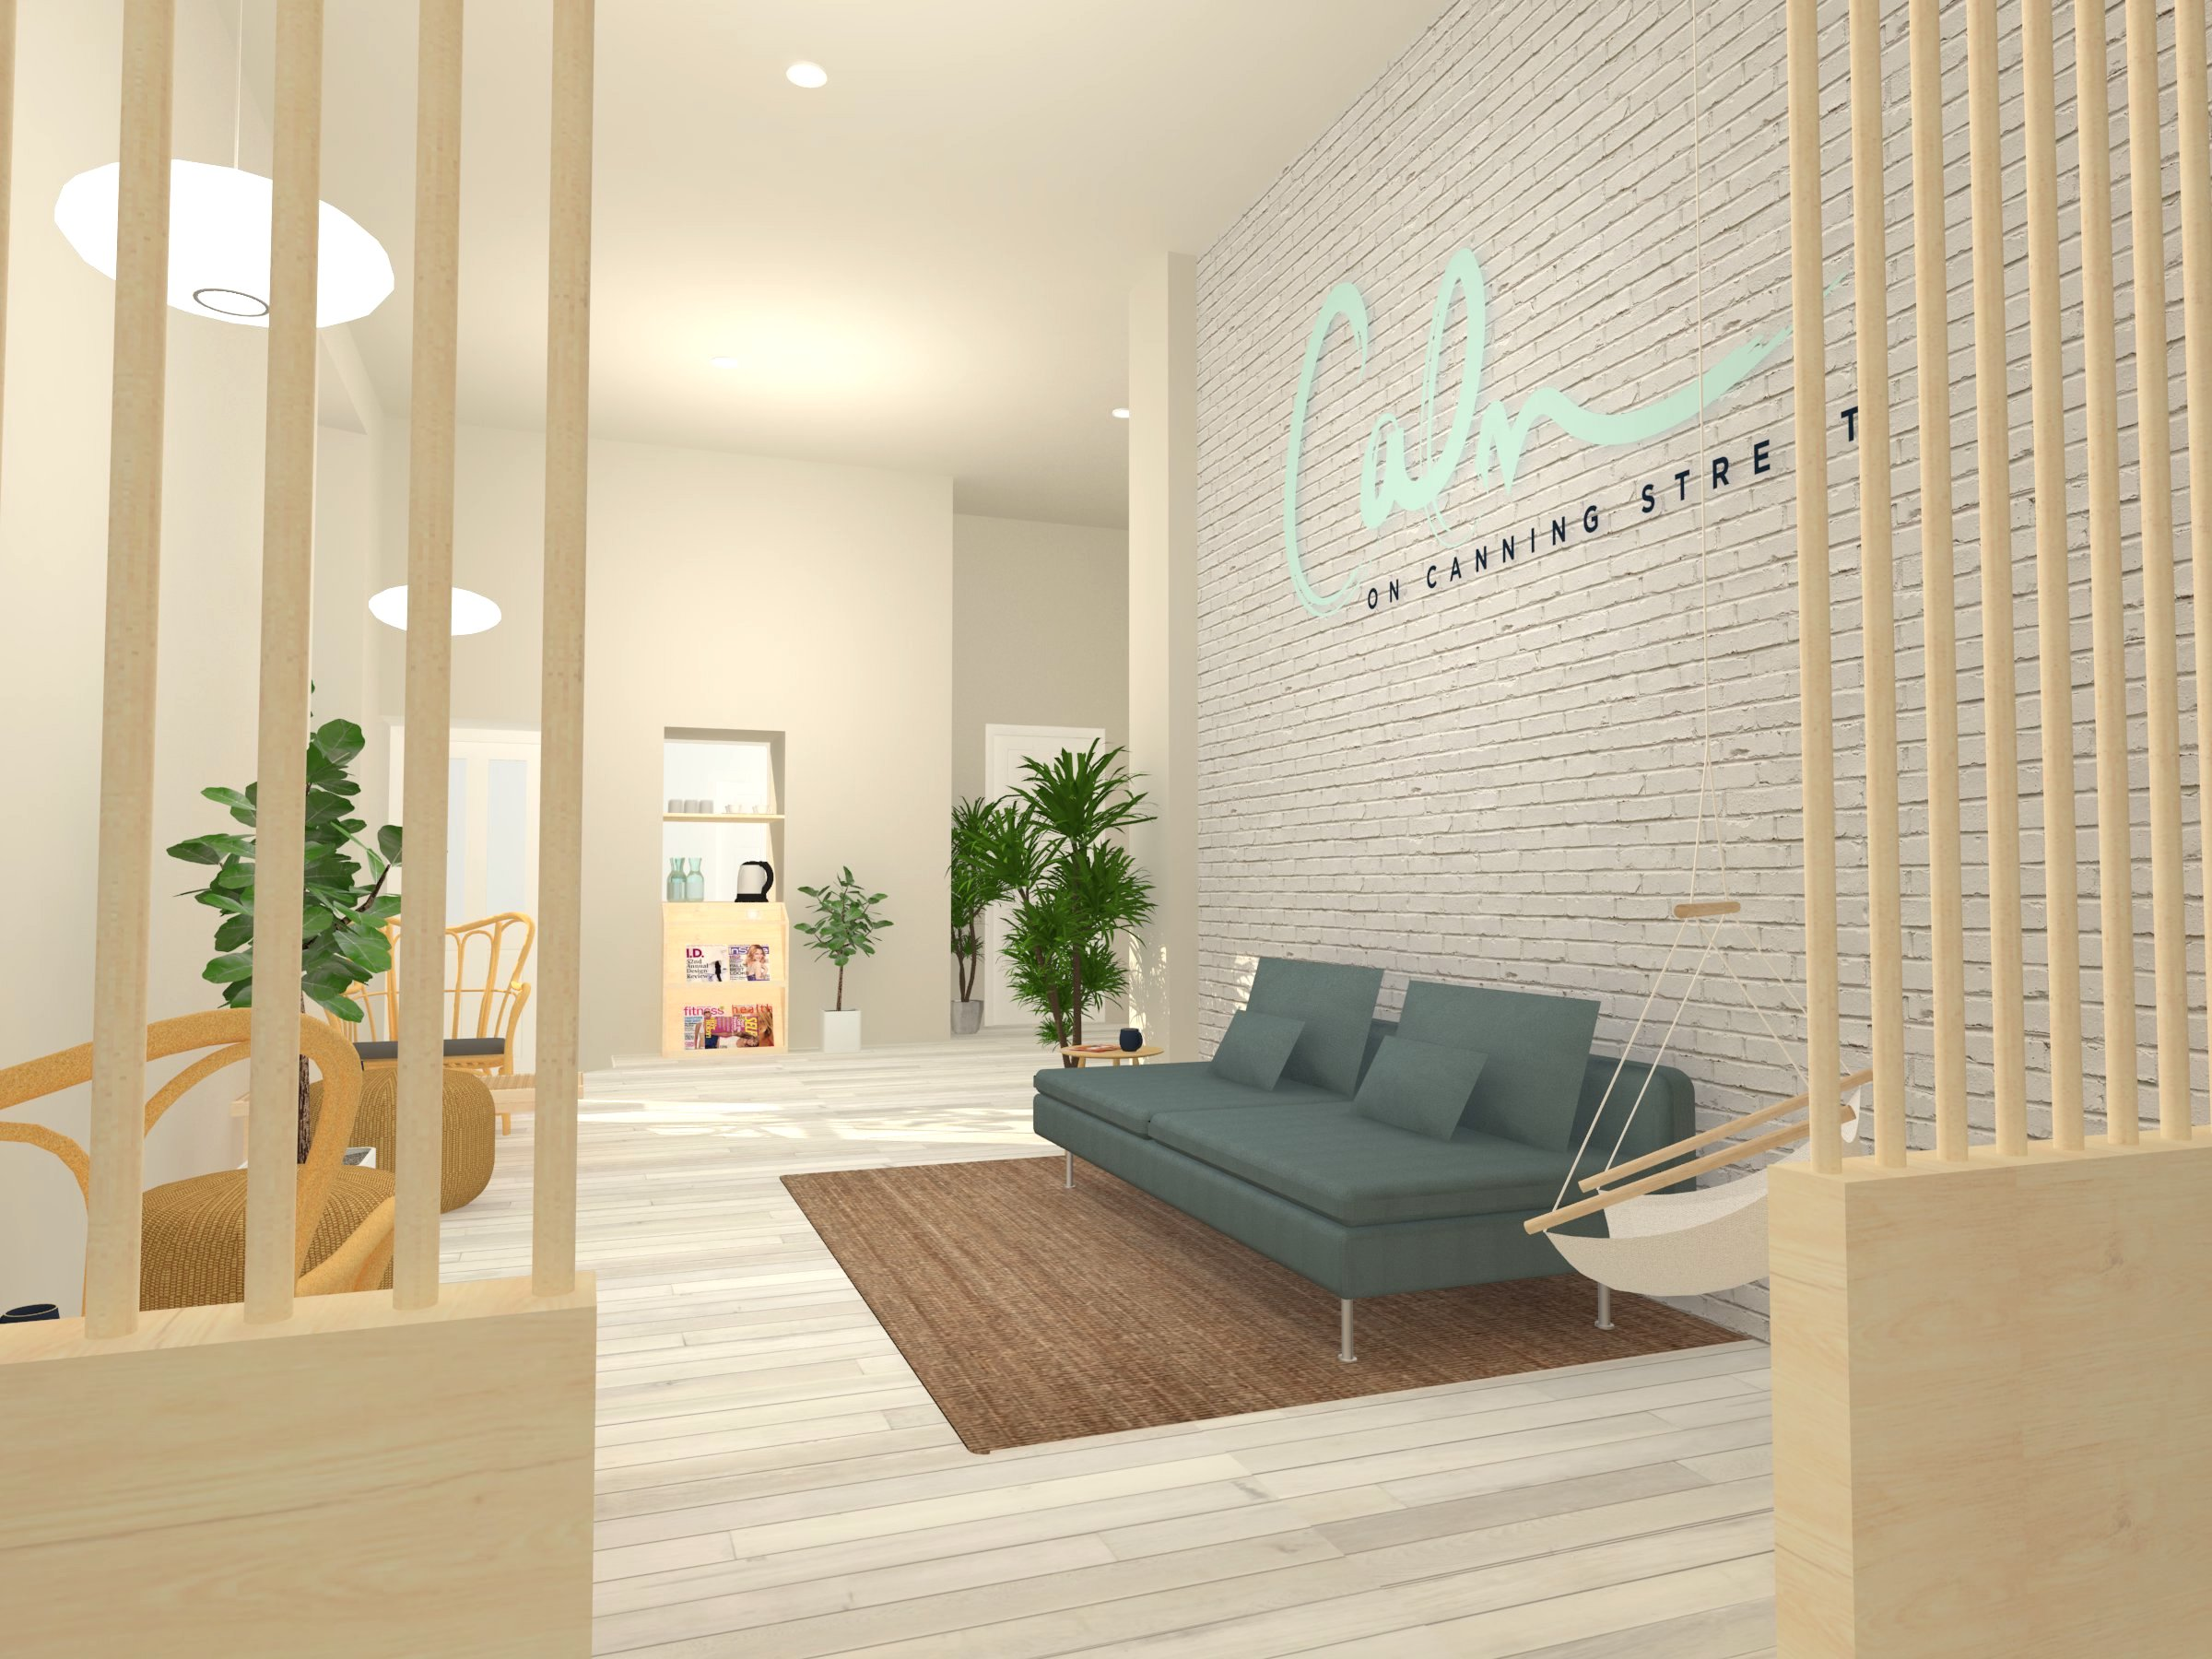 Calm_on_Canning_Street_RENDERS_03